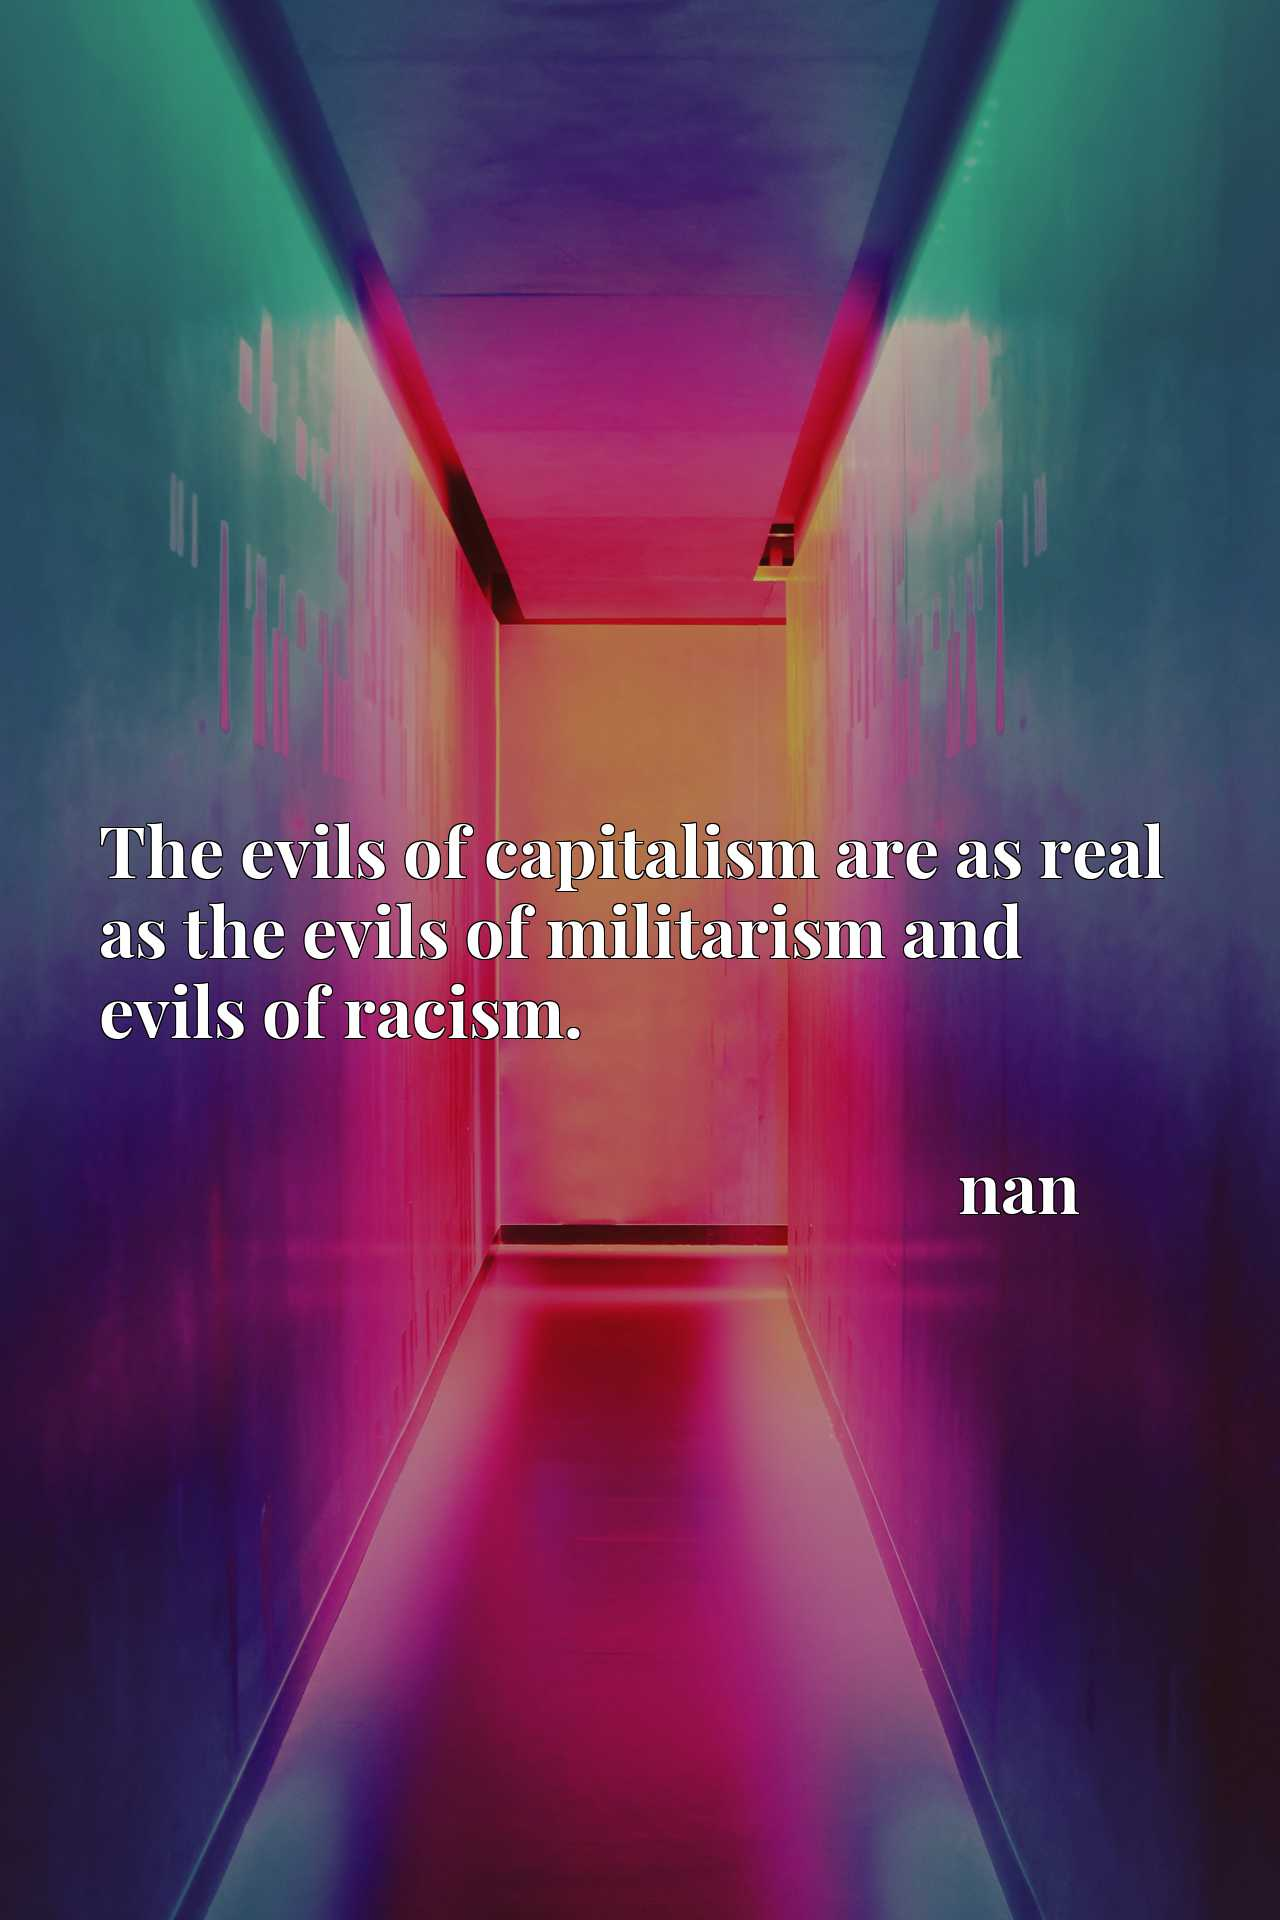 The evils of capitalism are as real as the evils of militarism and evils of racism.